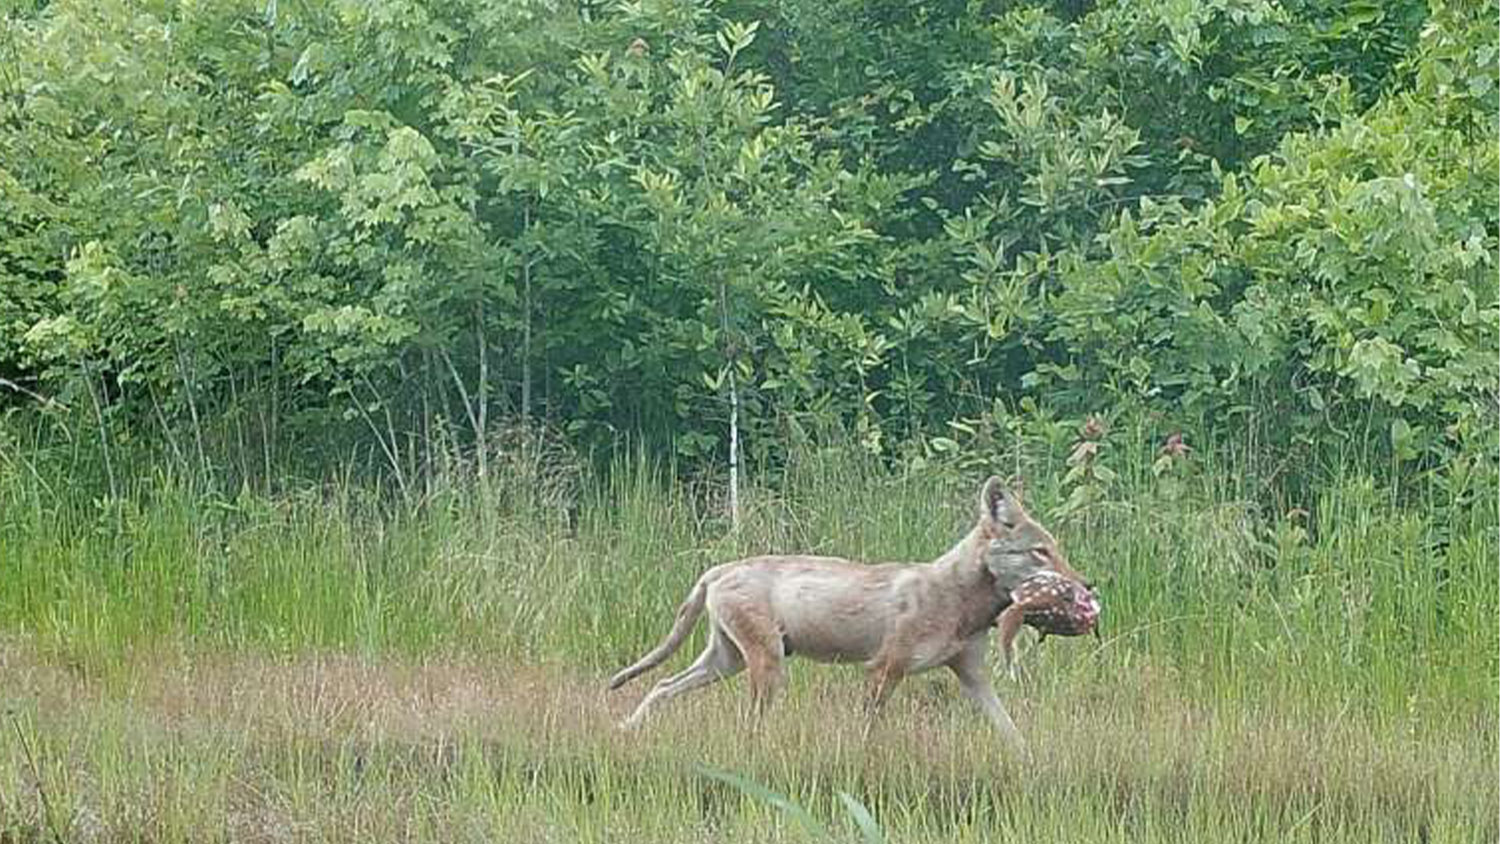 Coyote in a field - Coyotes vs. Deer: Who's Winning?